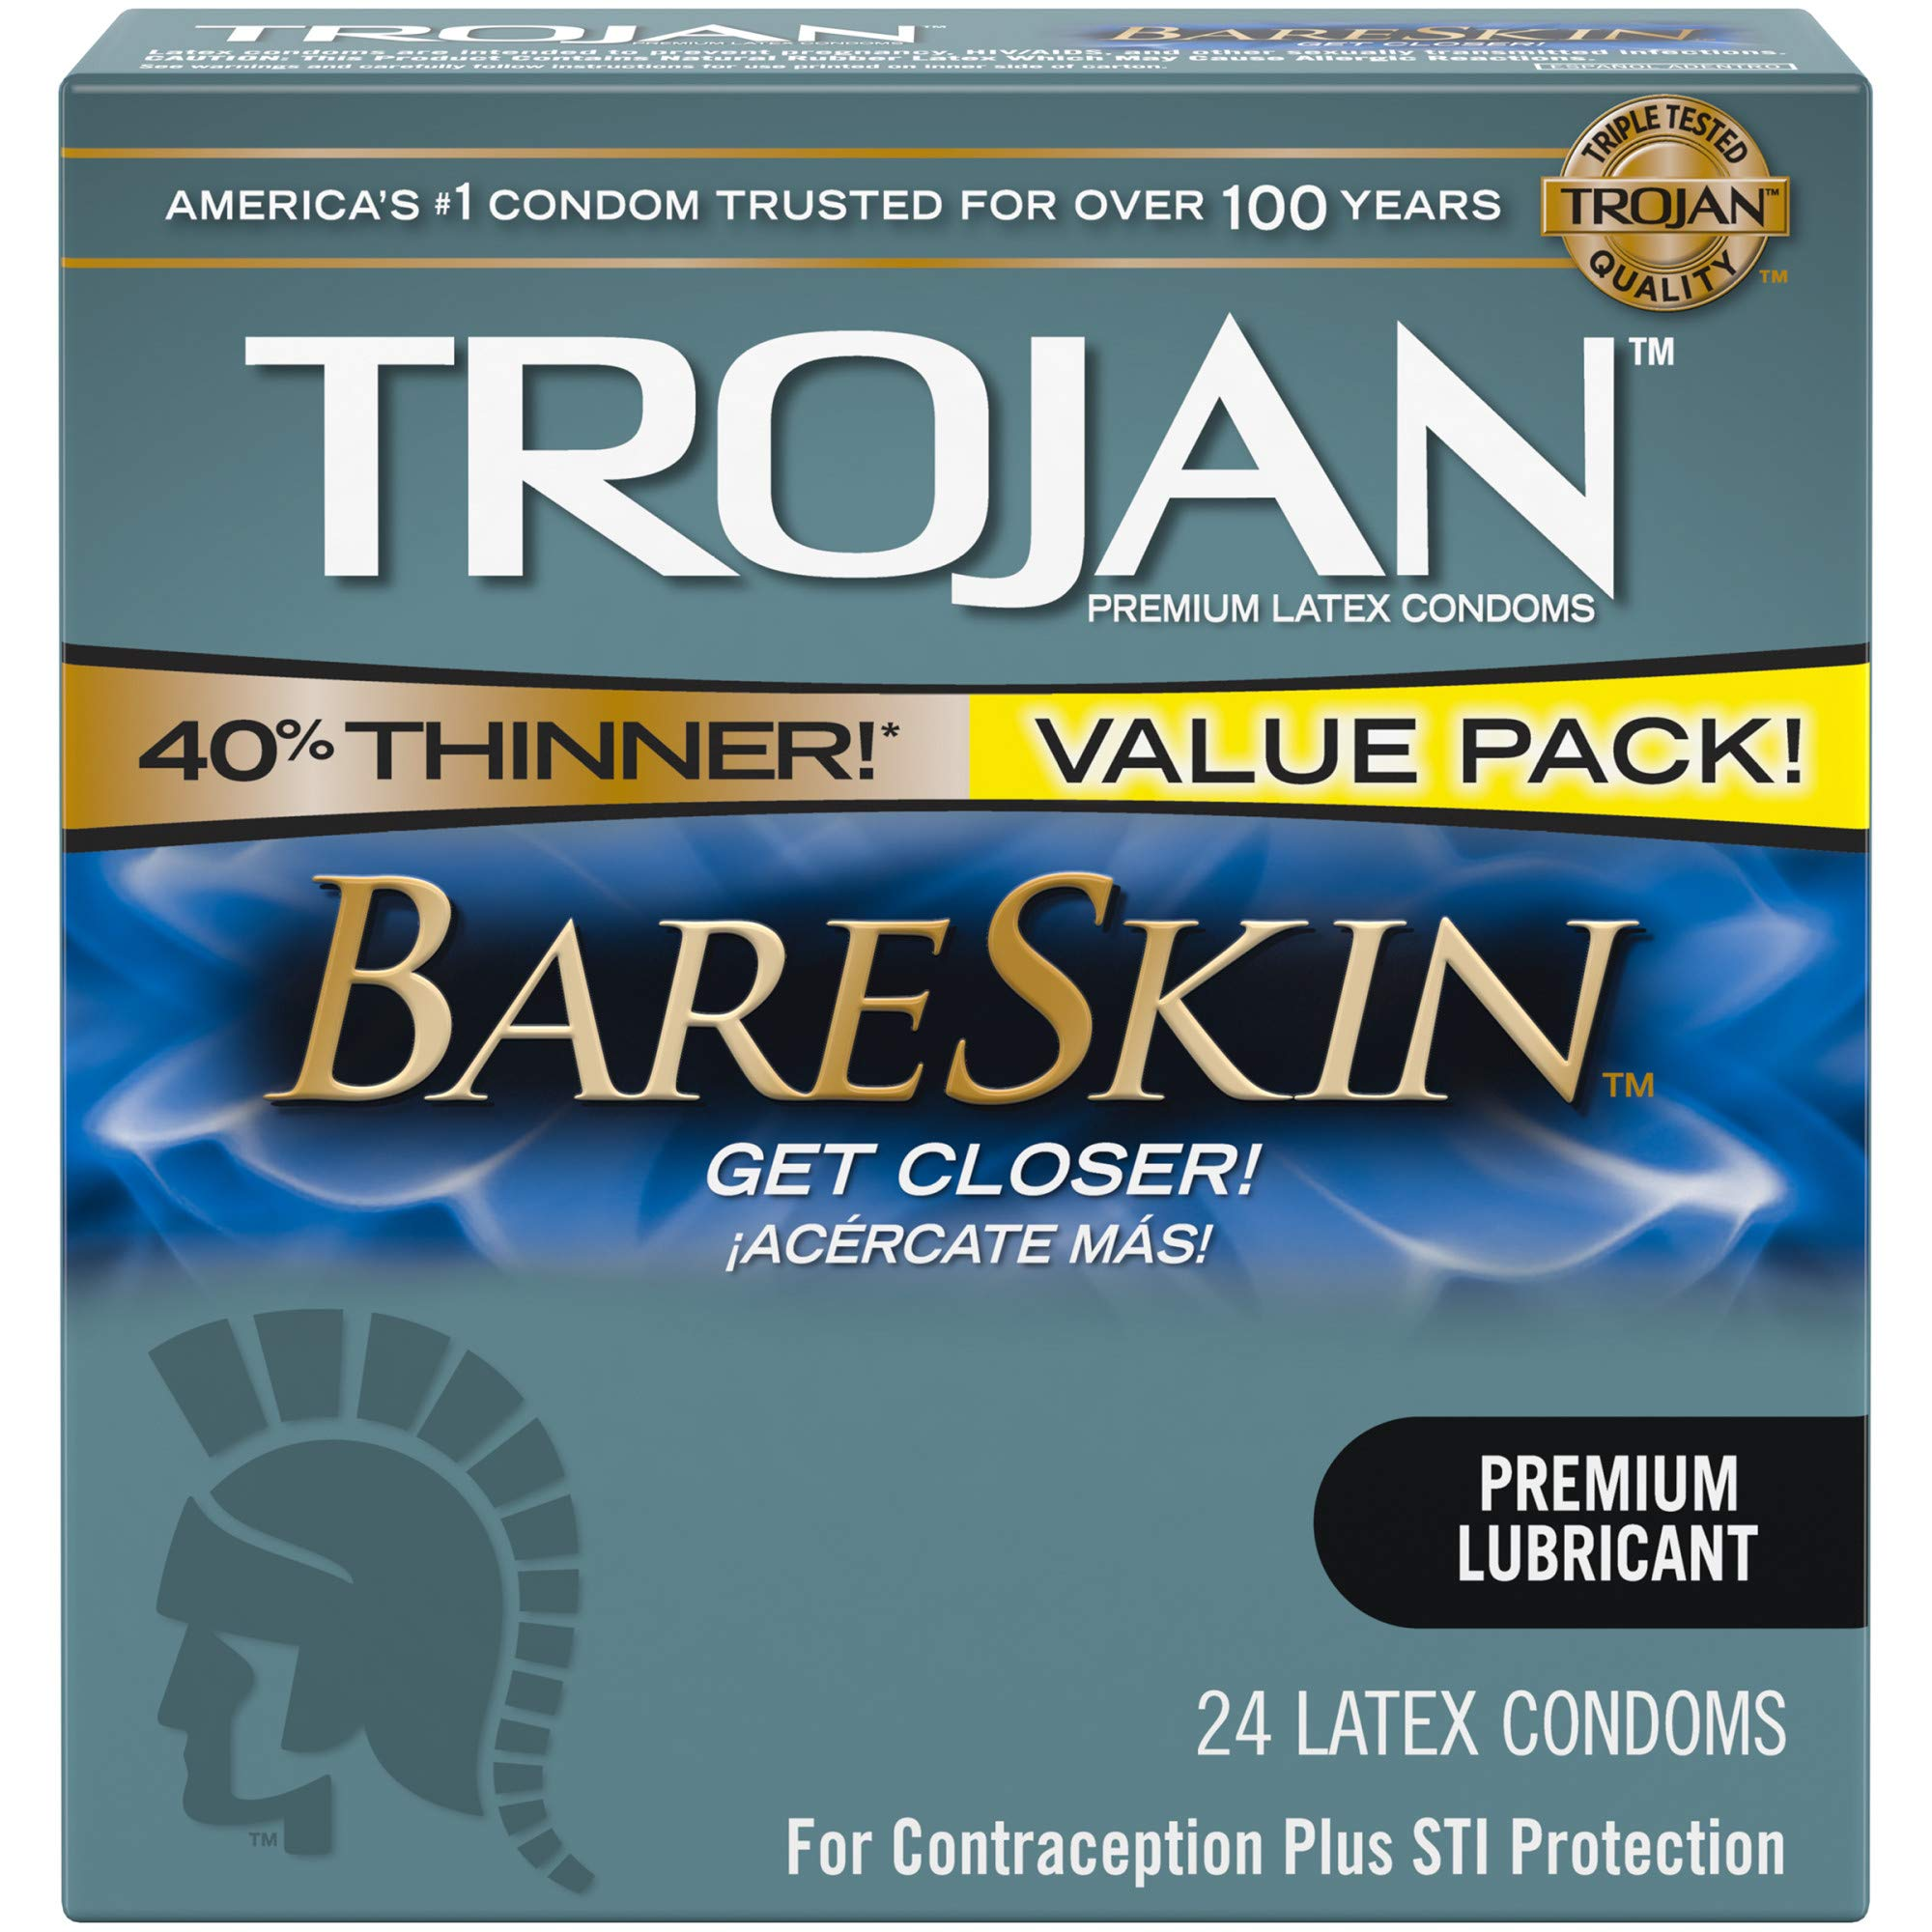 Trojan thick condoms